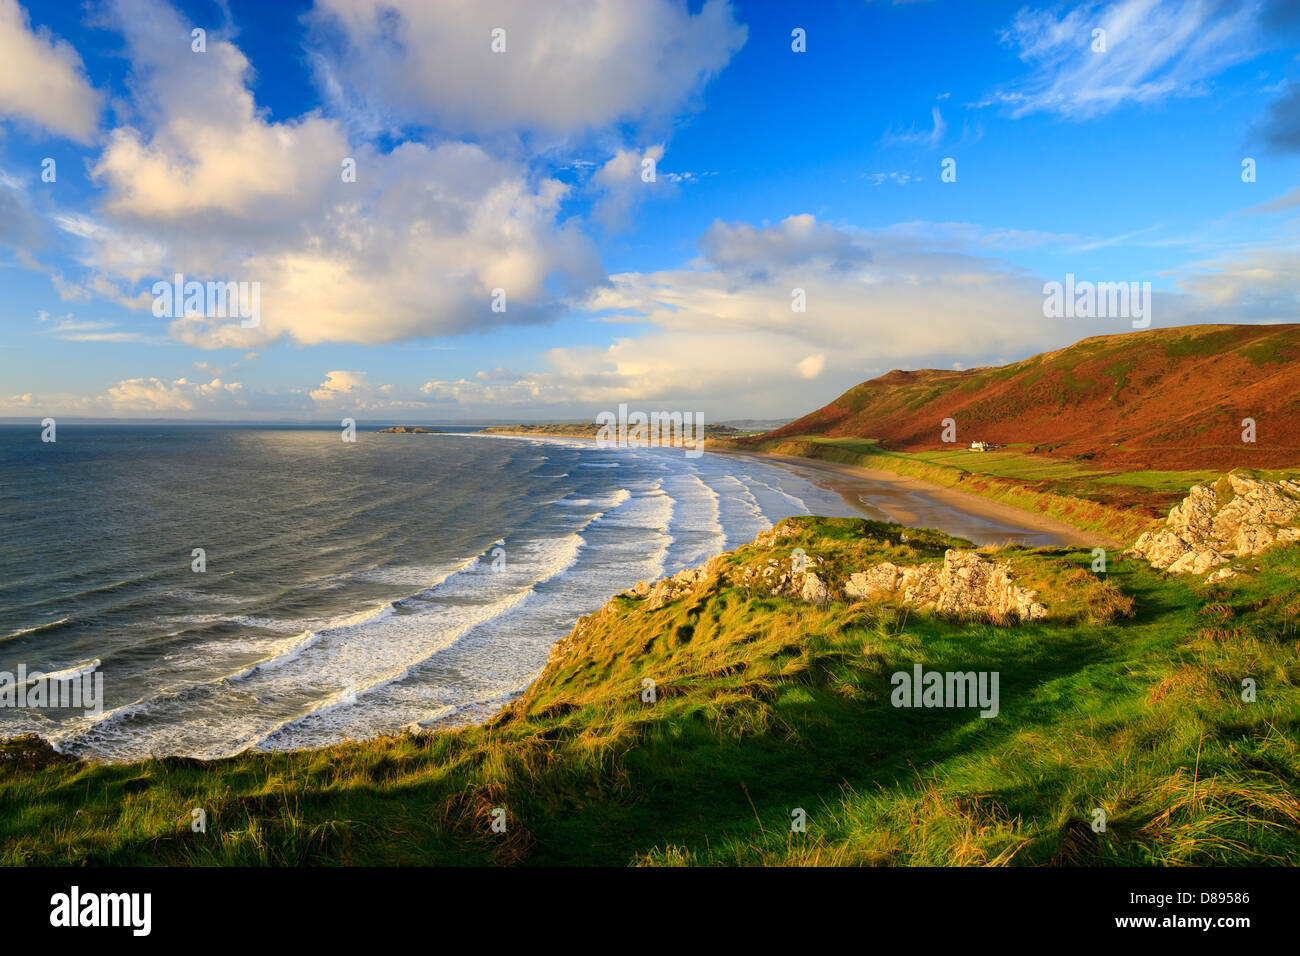 Rhossili Bay Gower Swansea Wales - Stock Image